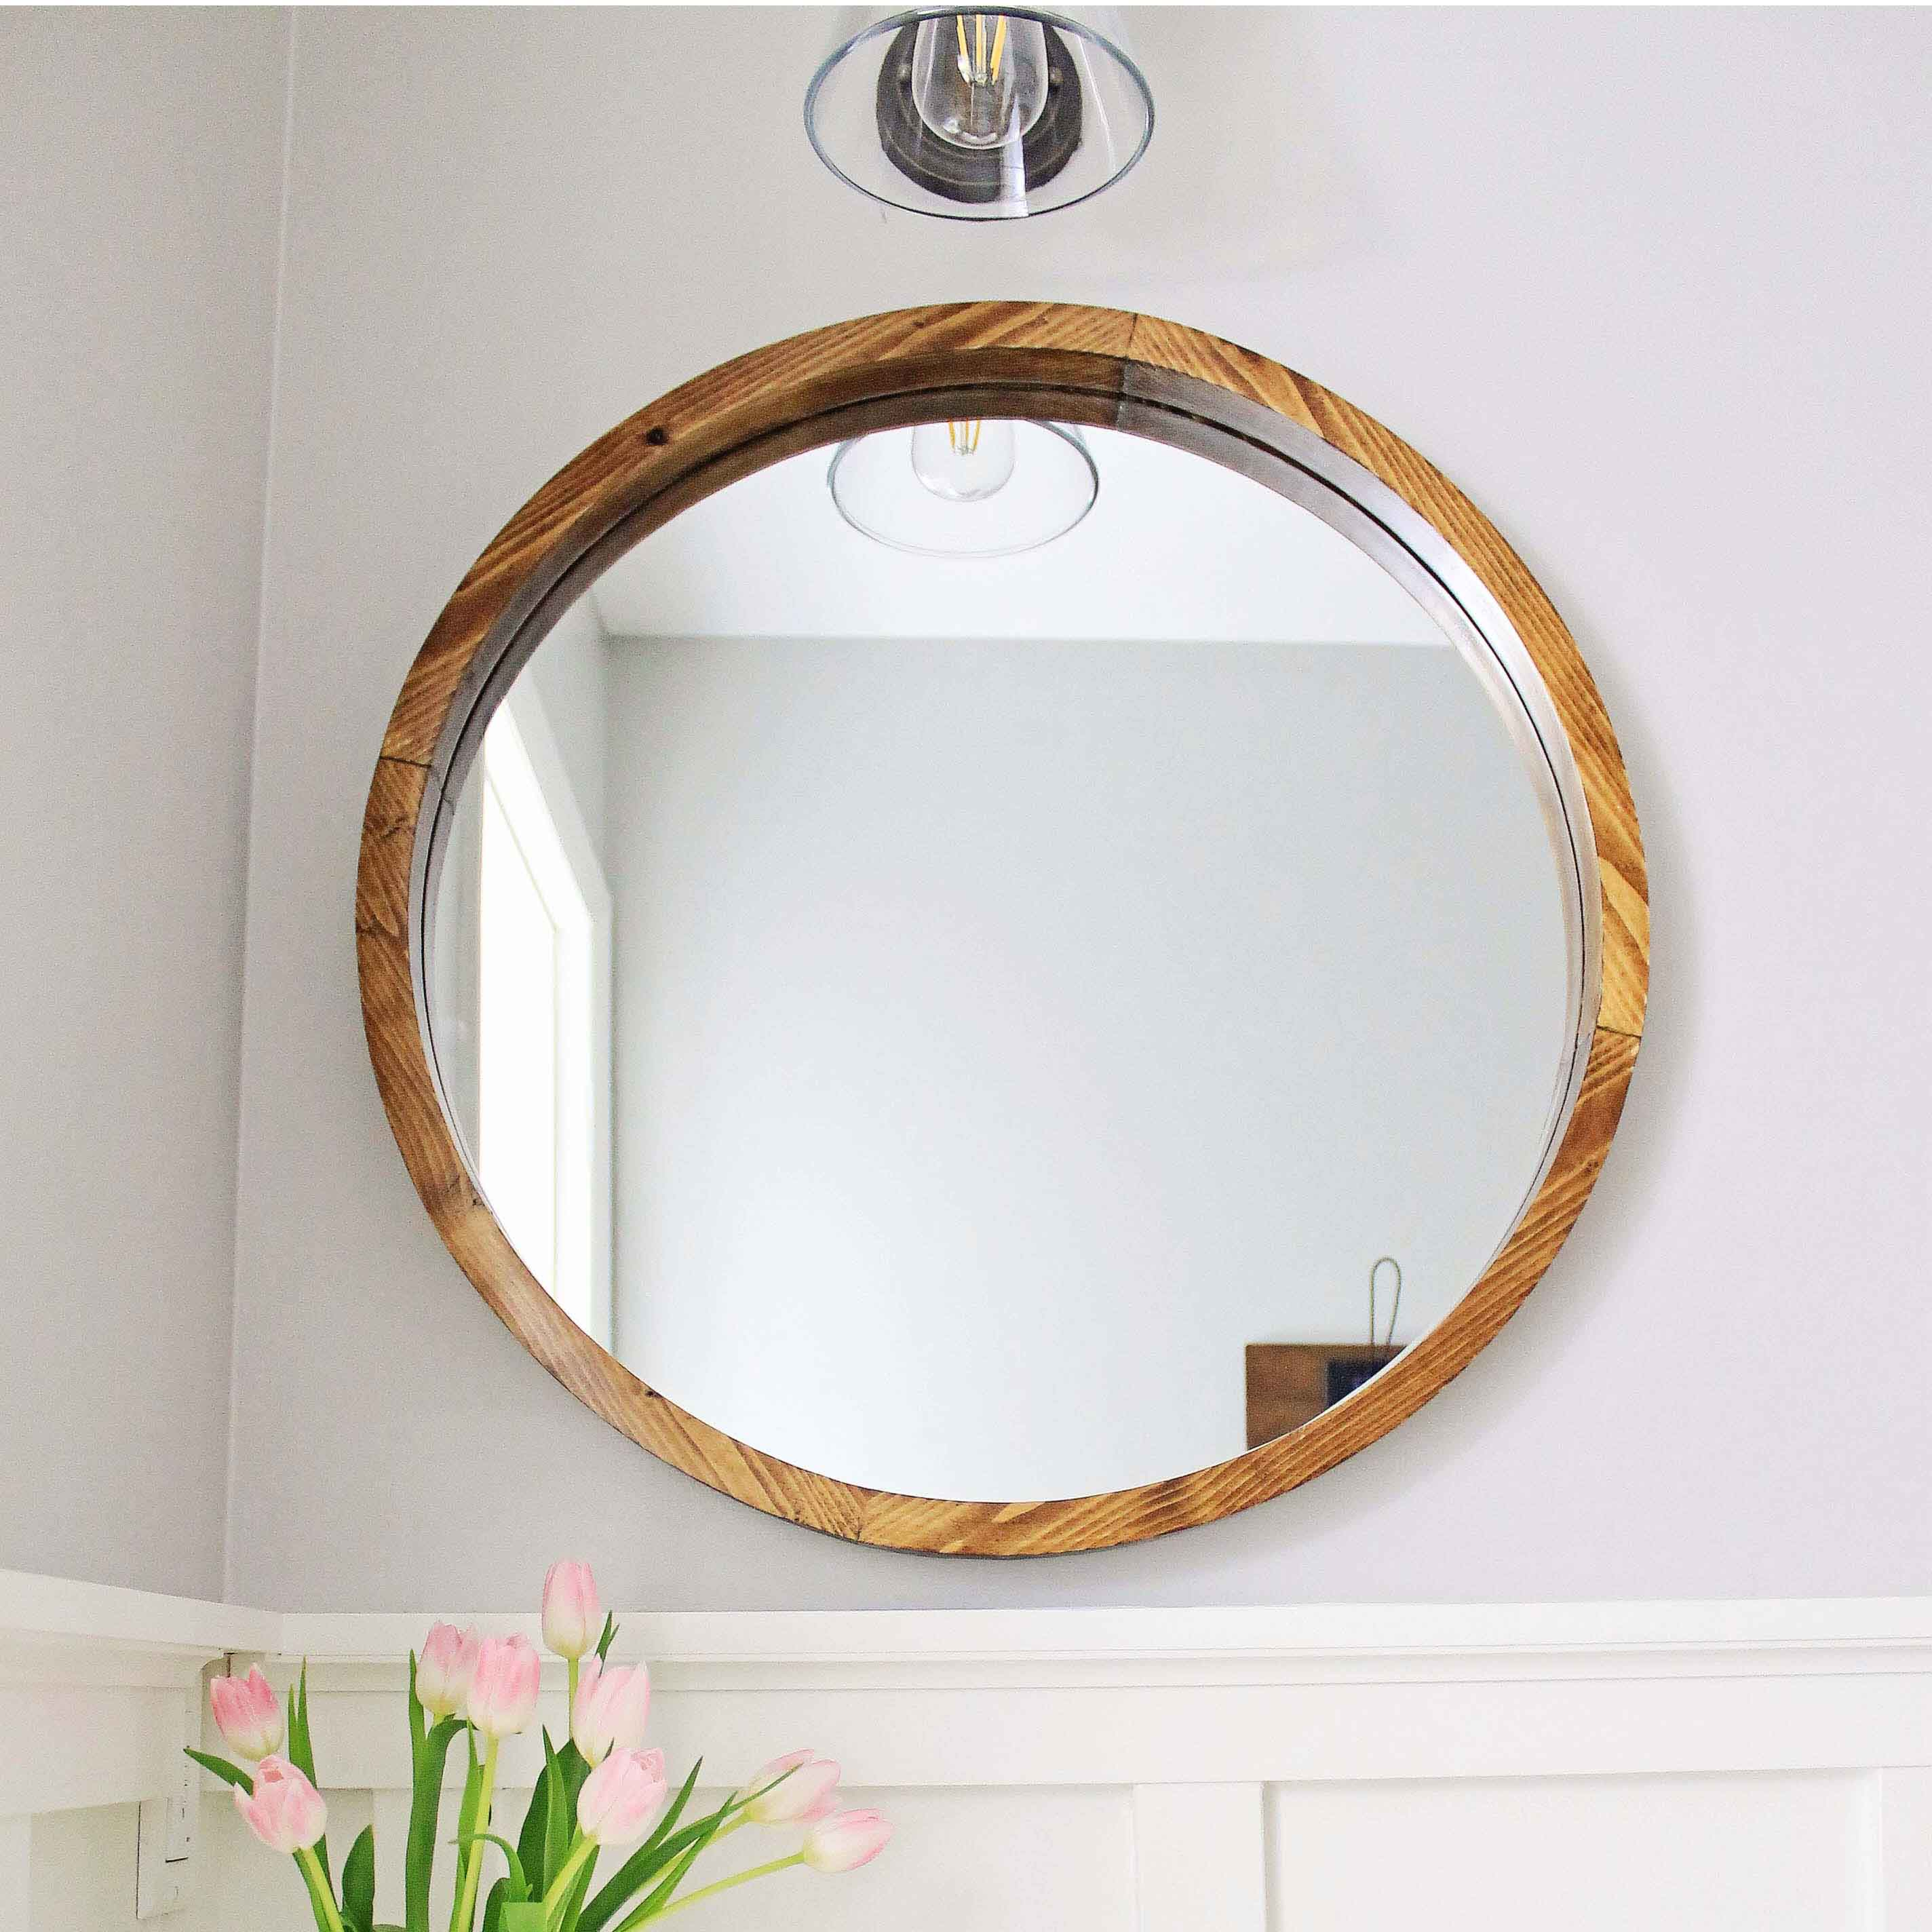 Round wood mirror diy angela marie made